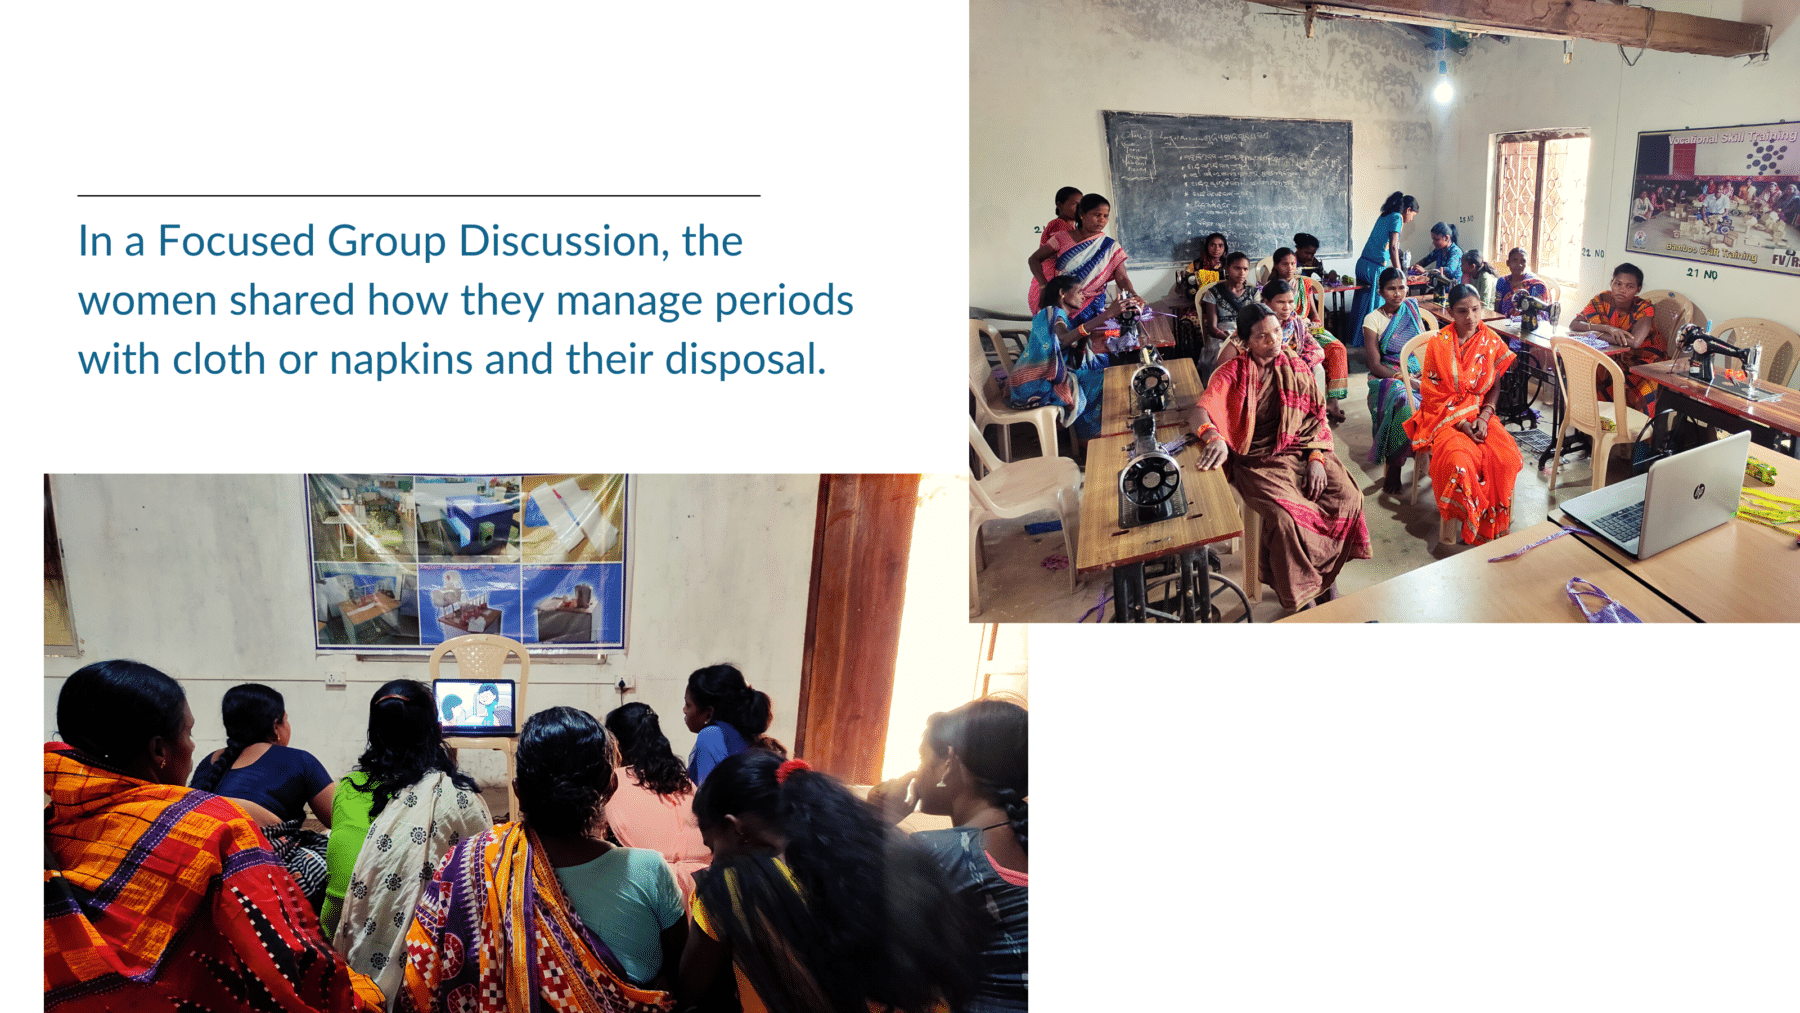 In a focused group discussion, the women shared how they manage periods with cloth or napkins and their disposal.